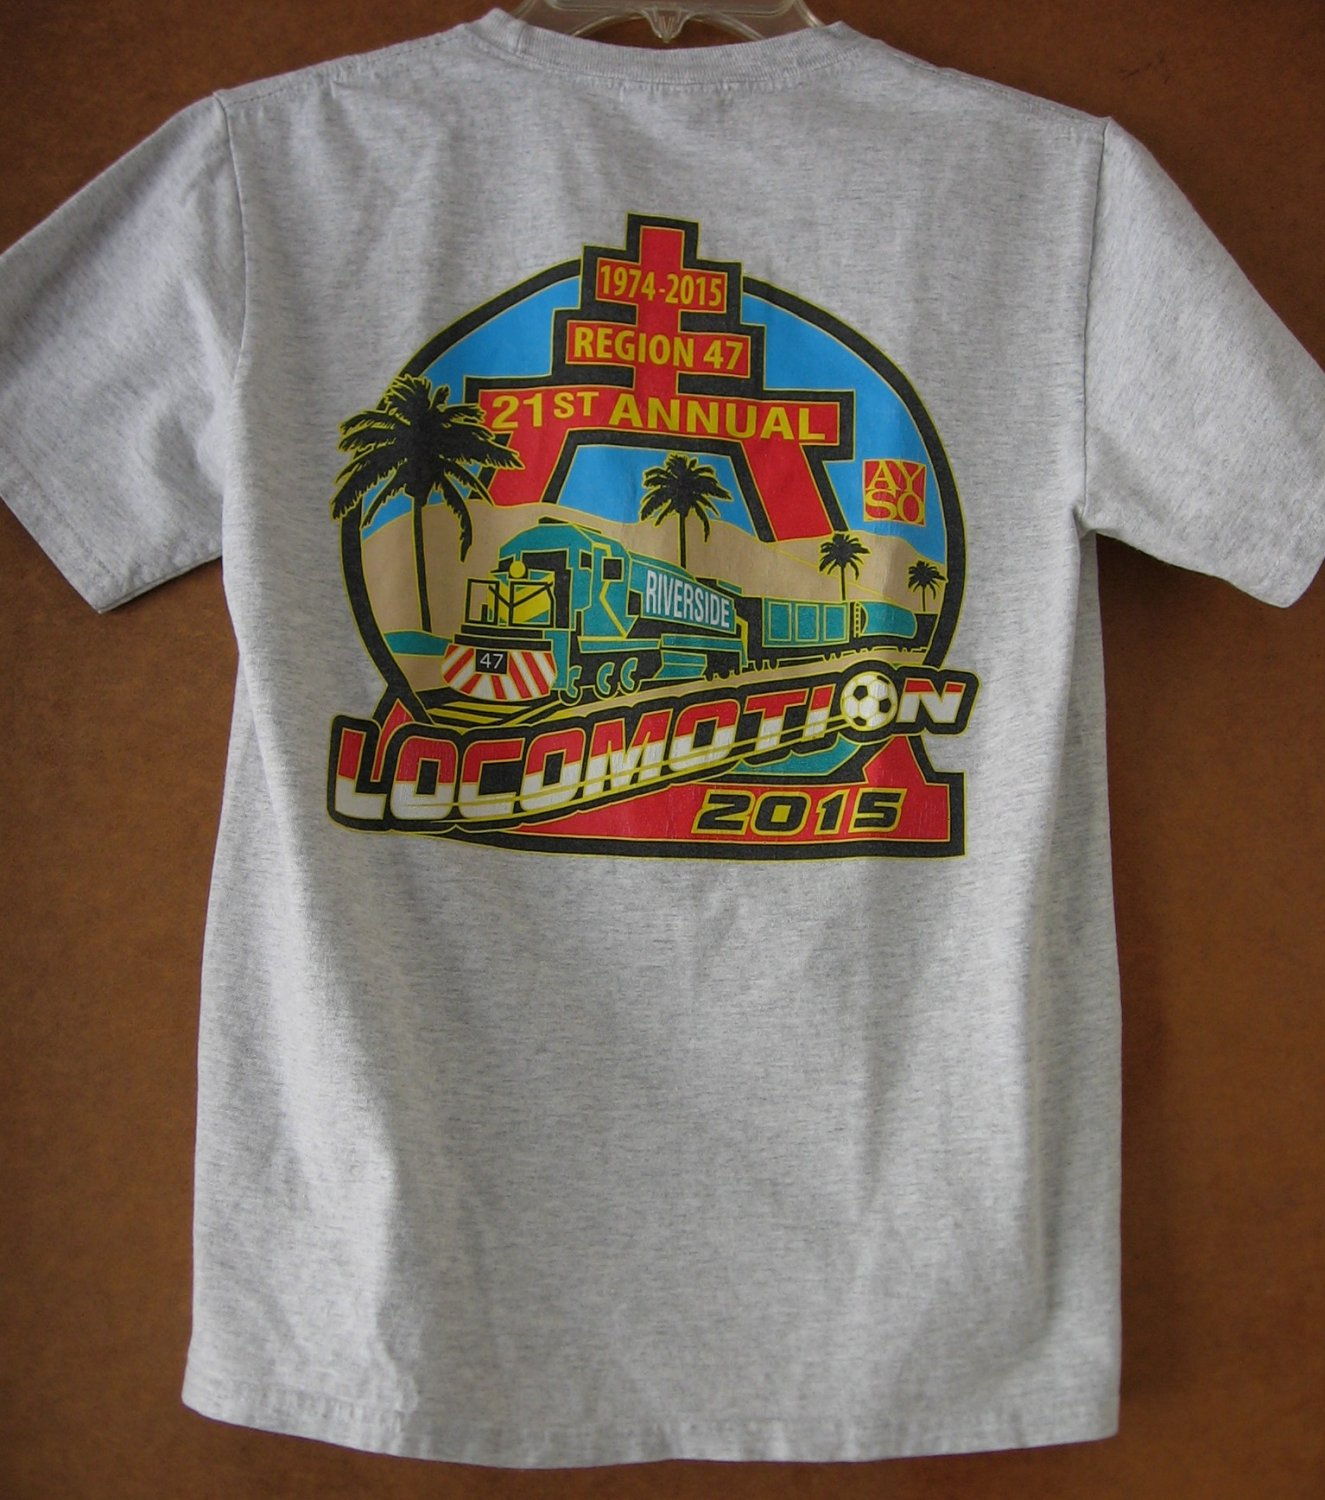 AYSO Locomotion 2015 21st Annual Region 47 Riverside T-Shirt Youth Large 14 - 16